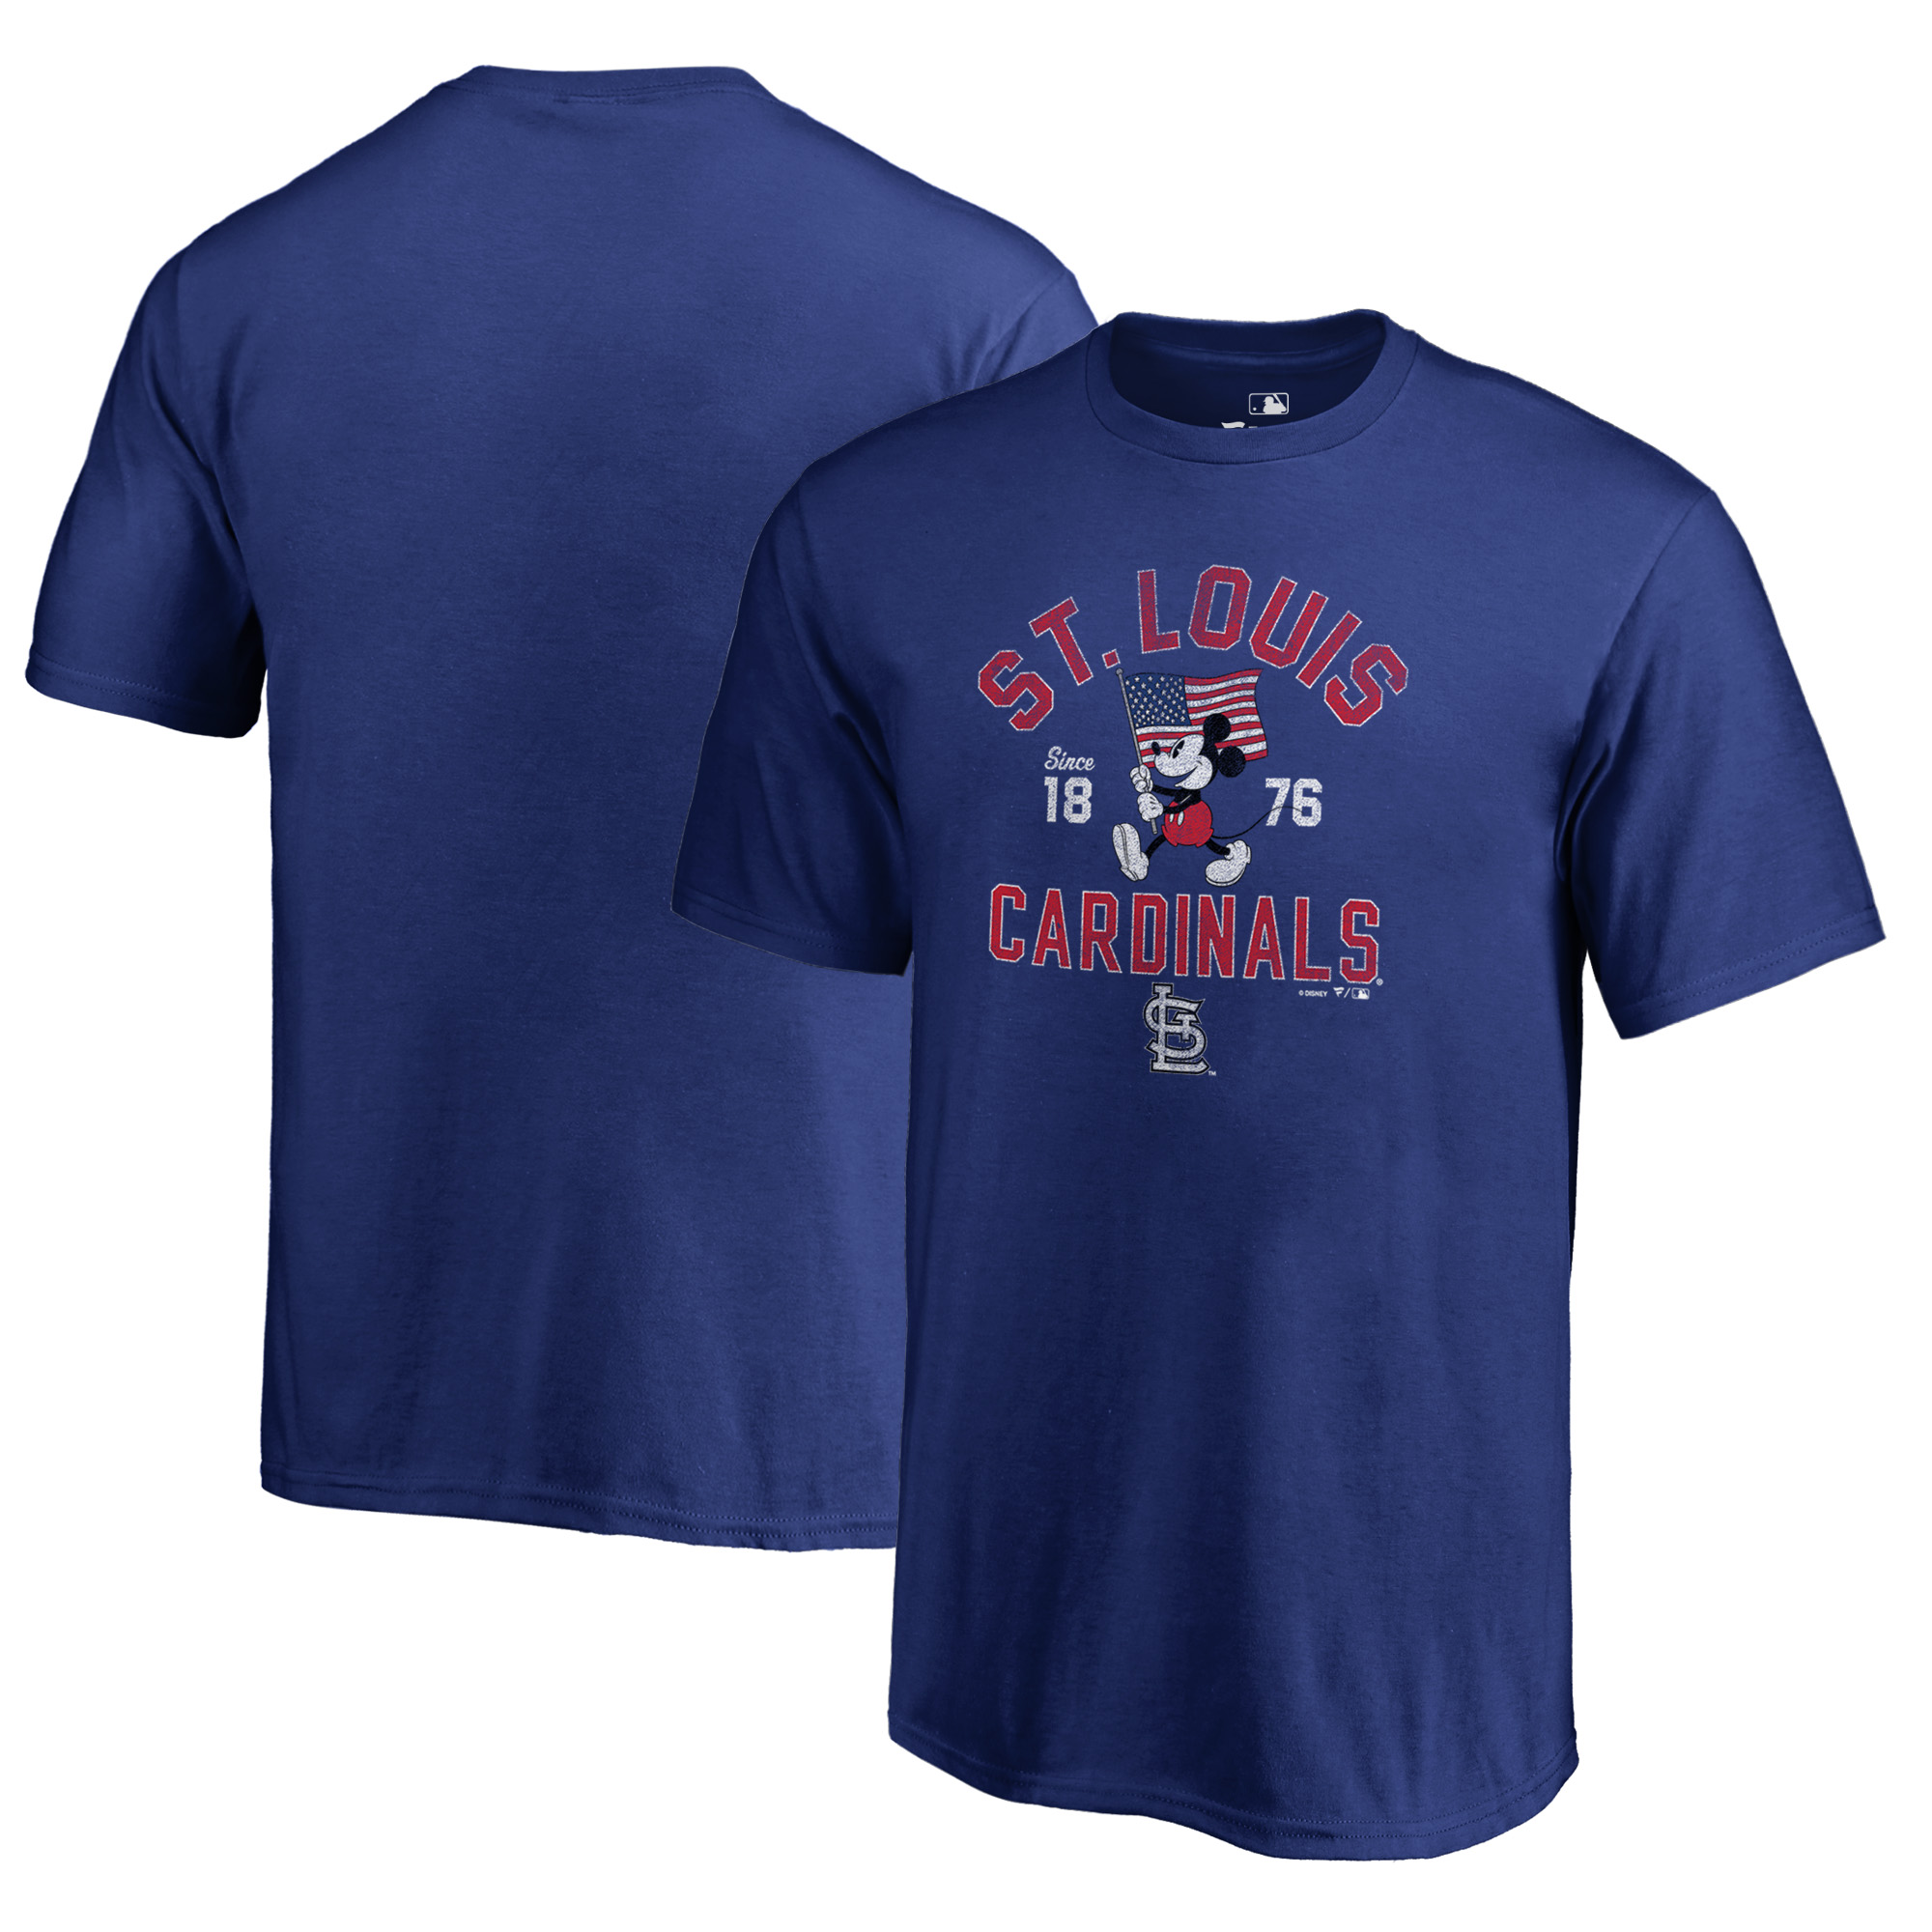 St. Louis Cardinals Fanatics Branded Youth Disney American Icon T-Shirt - Royal